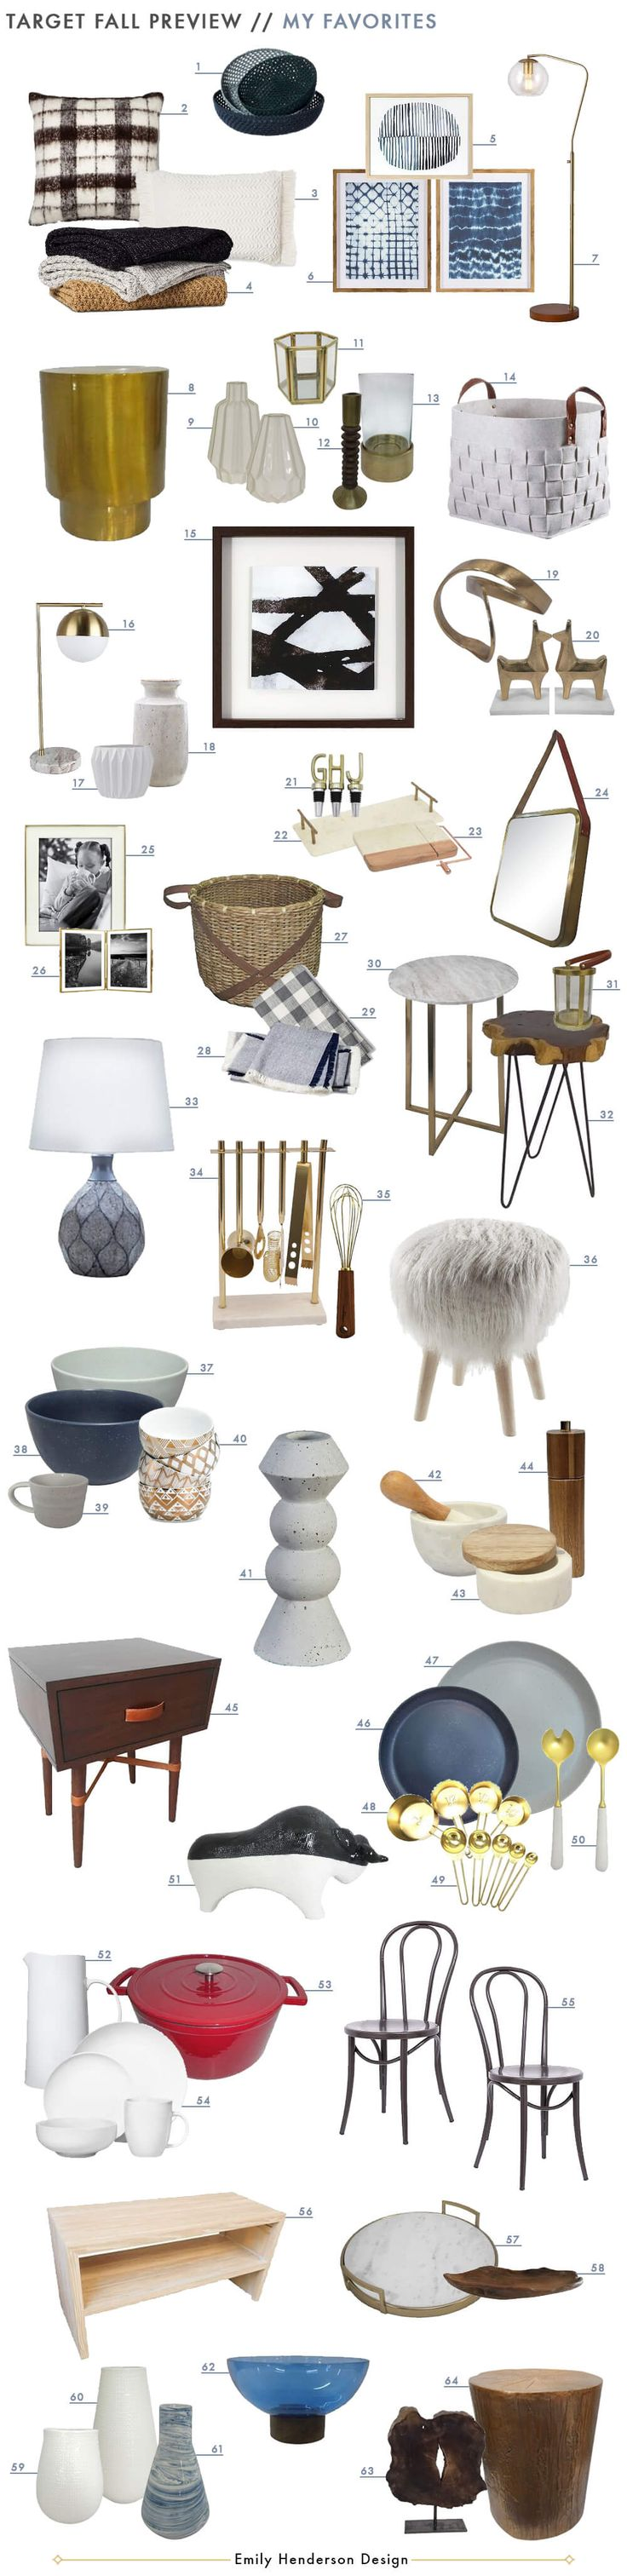 Kids table and chair set target home design ideas - The New Target Fall Style Collection Emily Henderson S Favorite Items Target